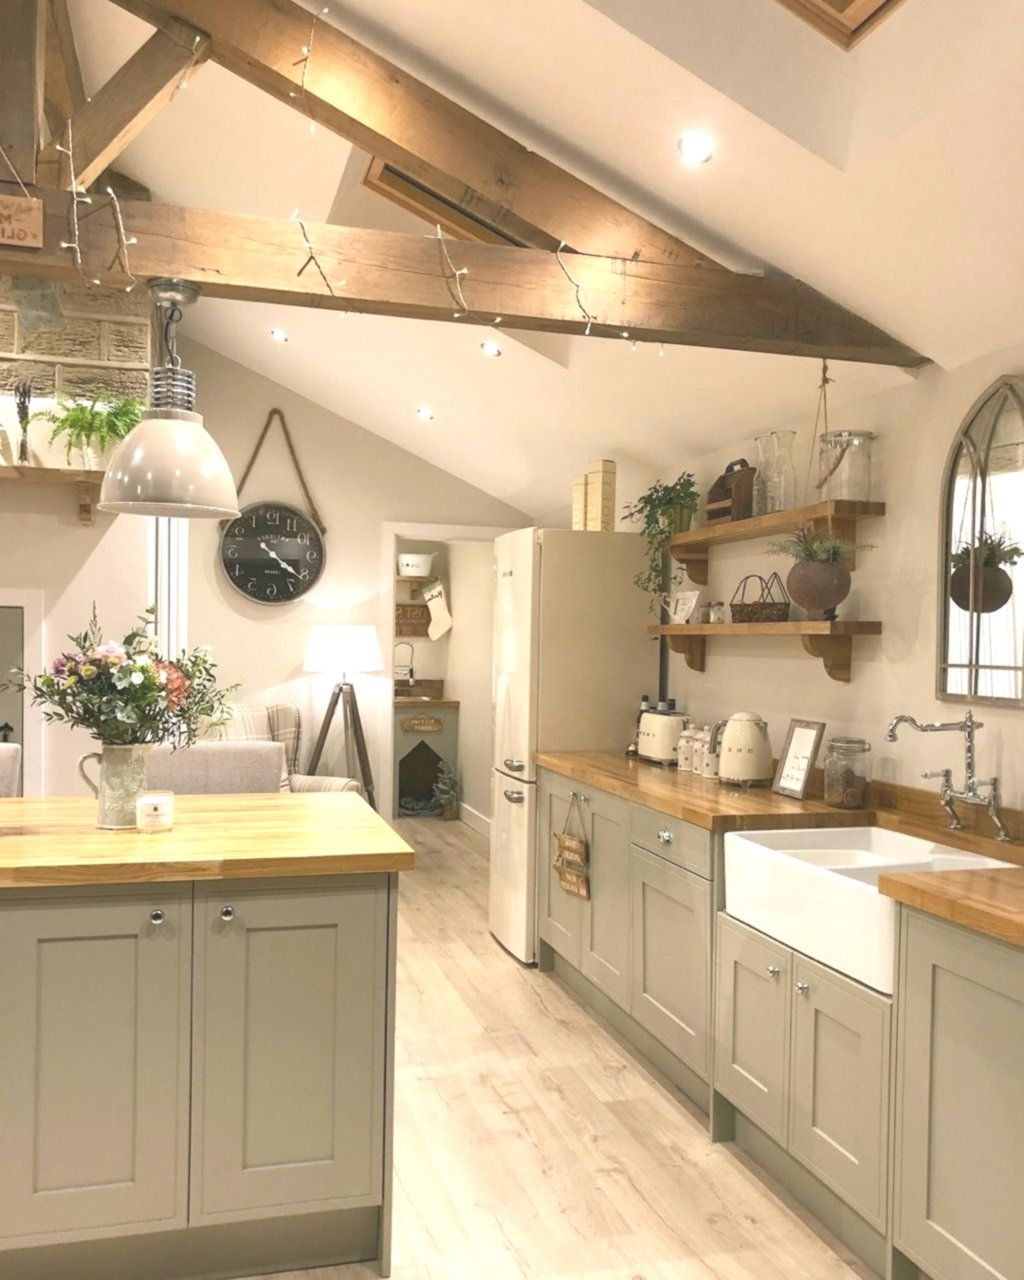 Kitchen Inspiration N14hectorhouse In 2020 Kitchen Inspirations Warm Home Decor Kitchen Concepts